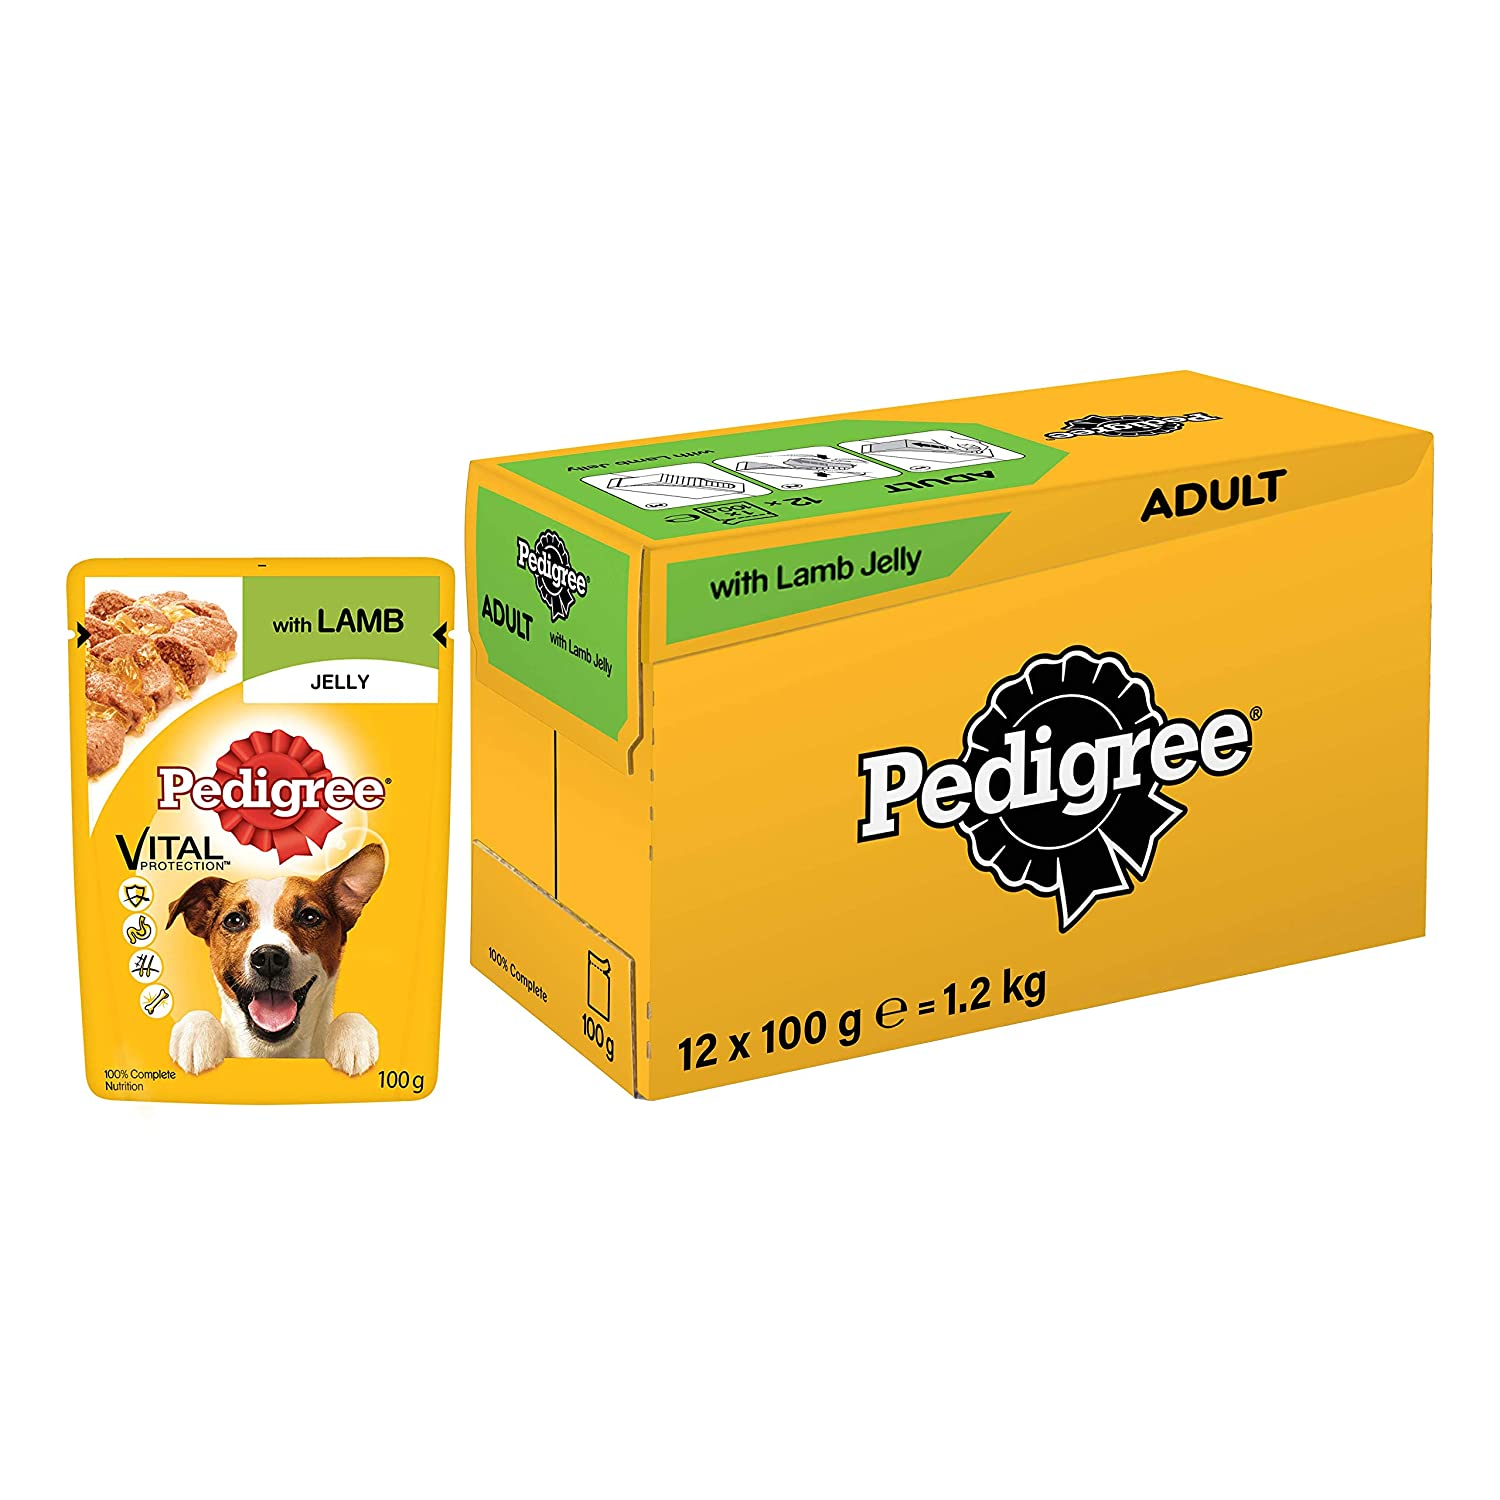 Pedigree Vital Protection Adult Wet Dog Food, Lamb in Jelly, (12 Pouches x 100g)